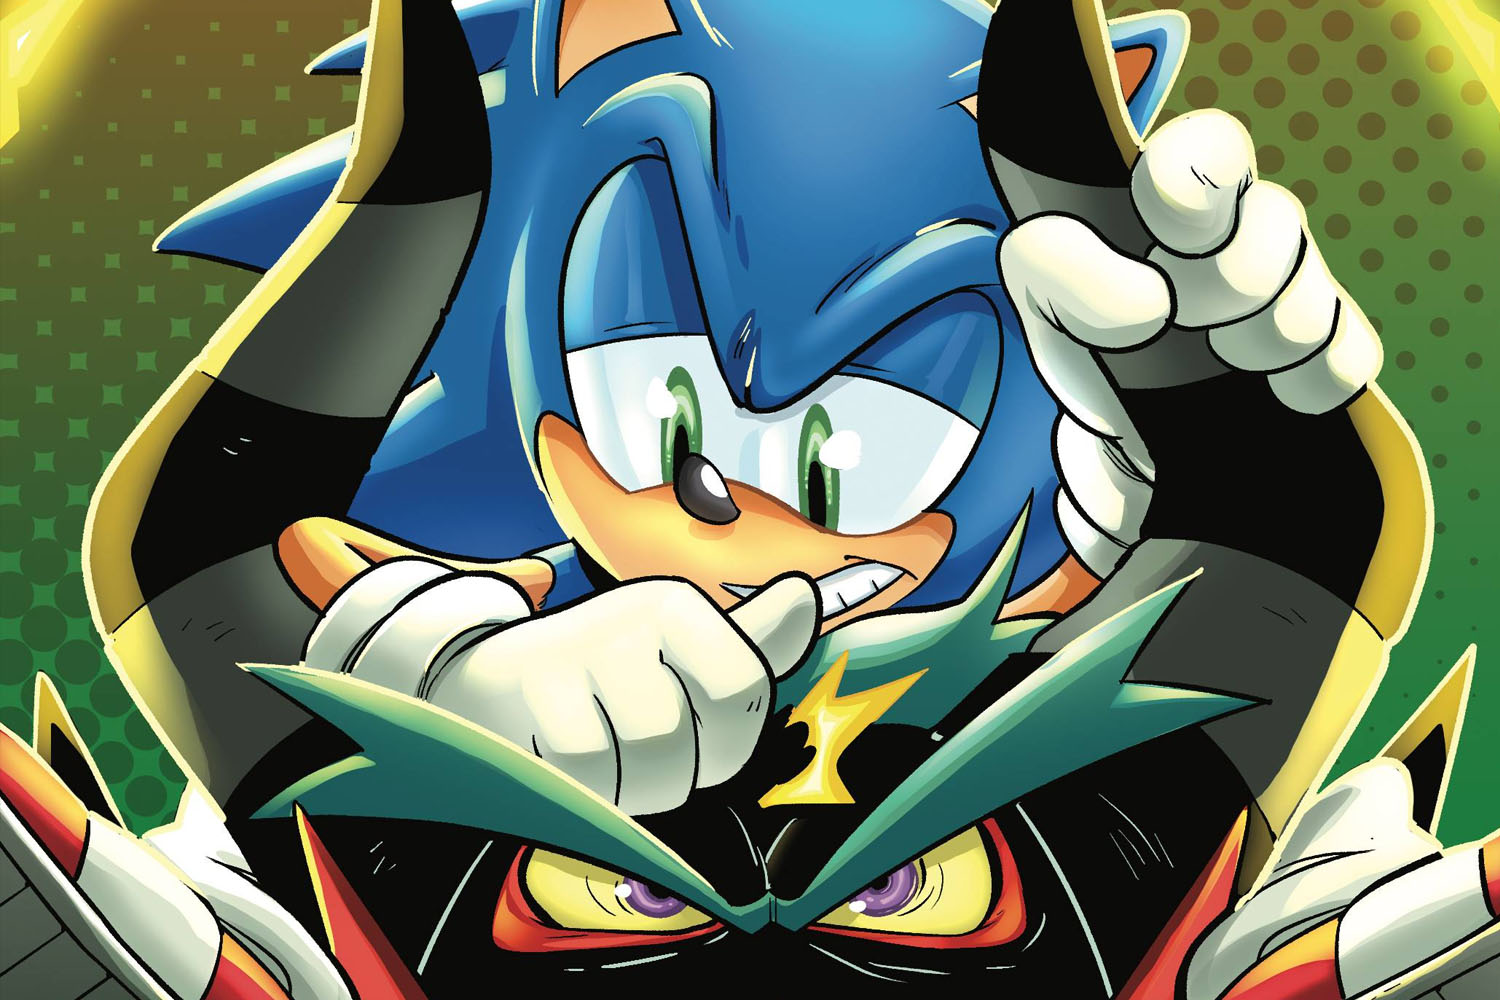 'Sonic the Hedgehog' #43 is a fun frenzy of fighting